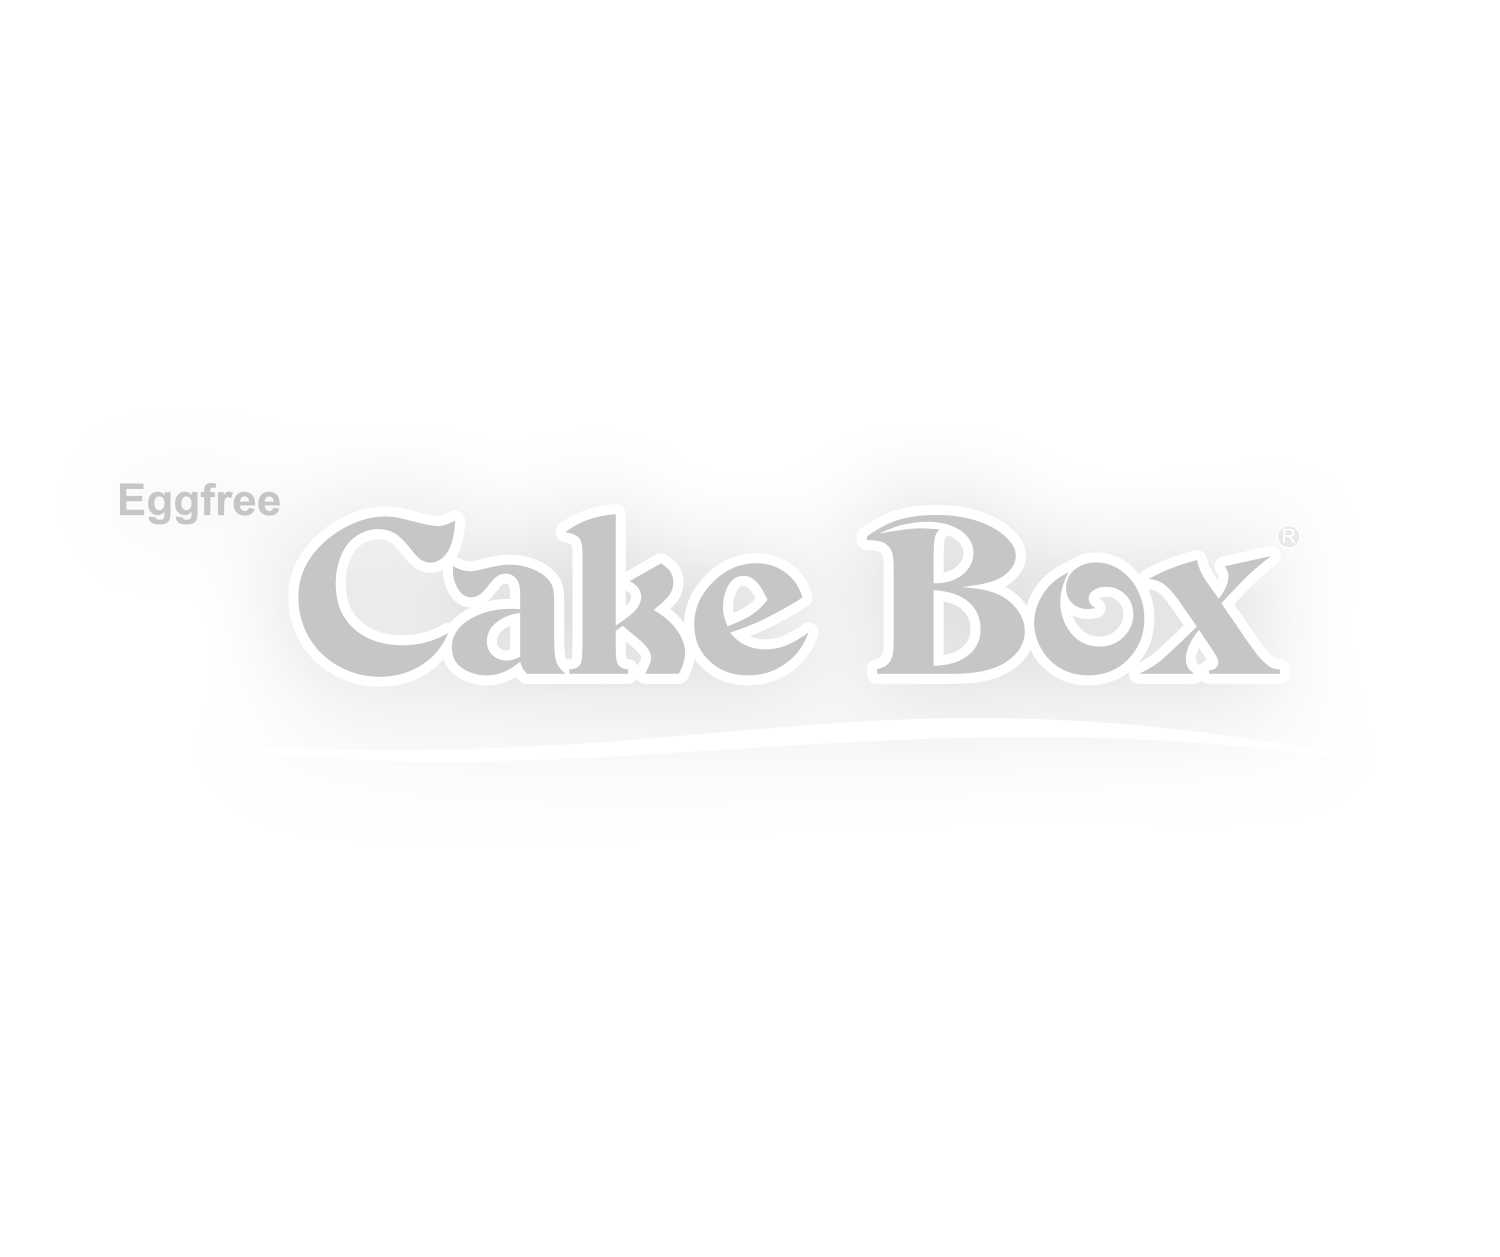 Cake Box Franchise